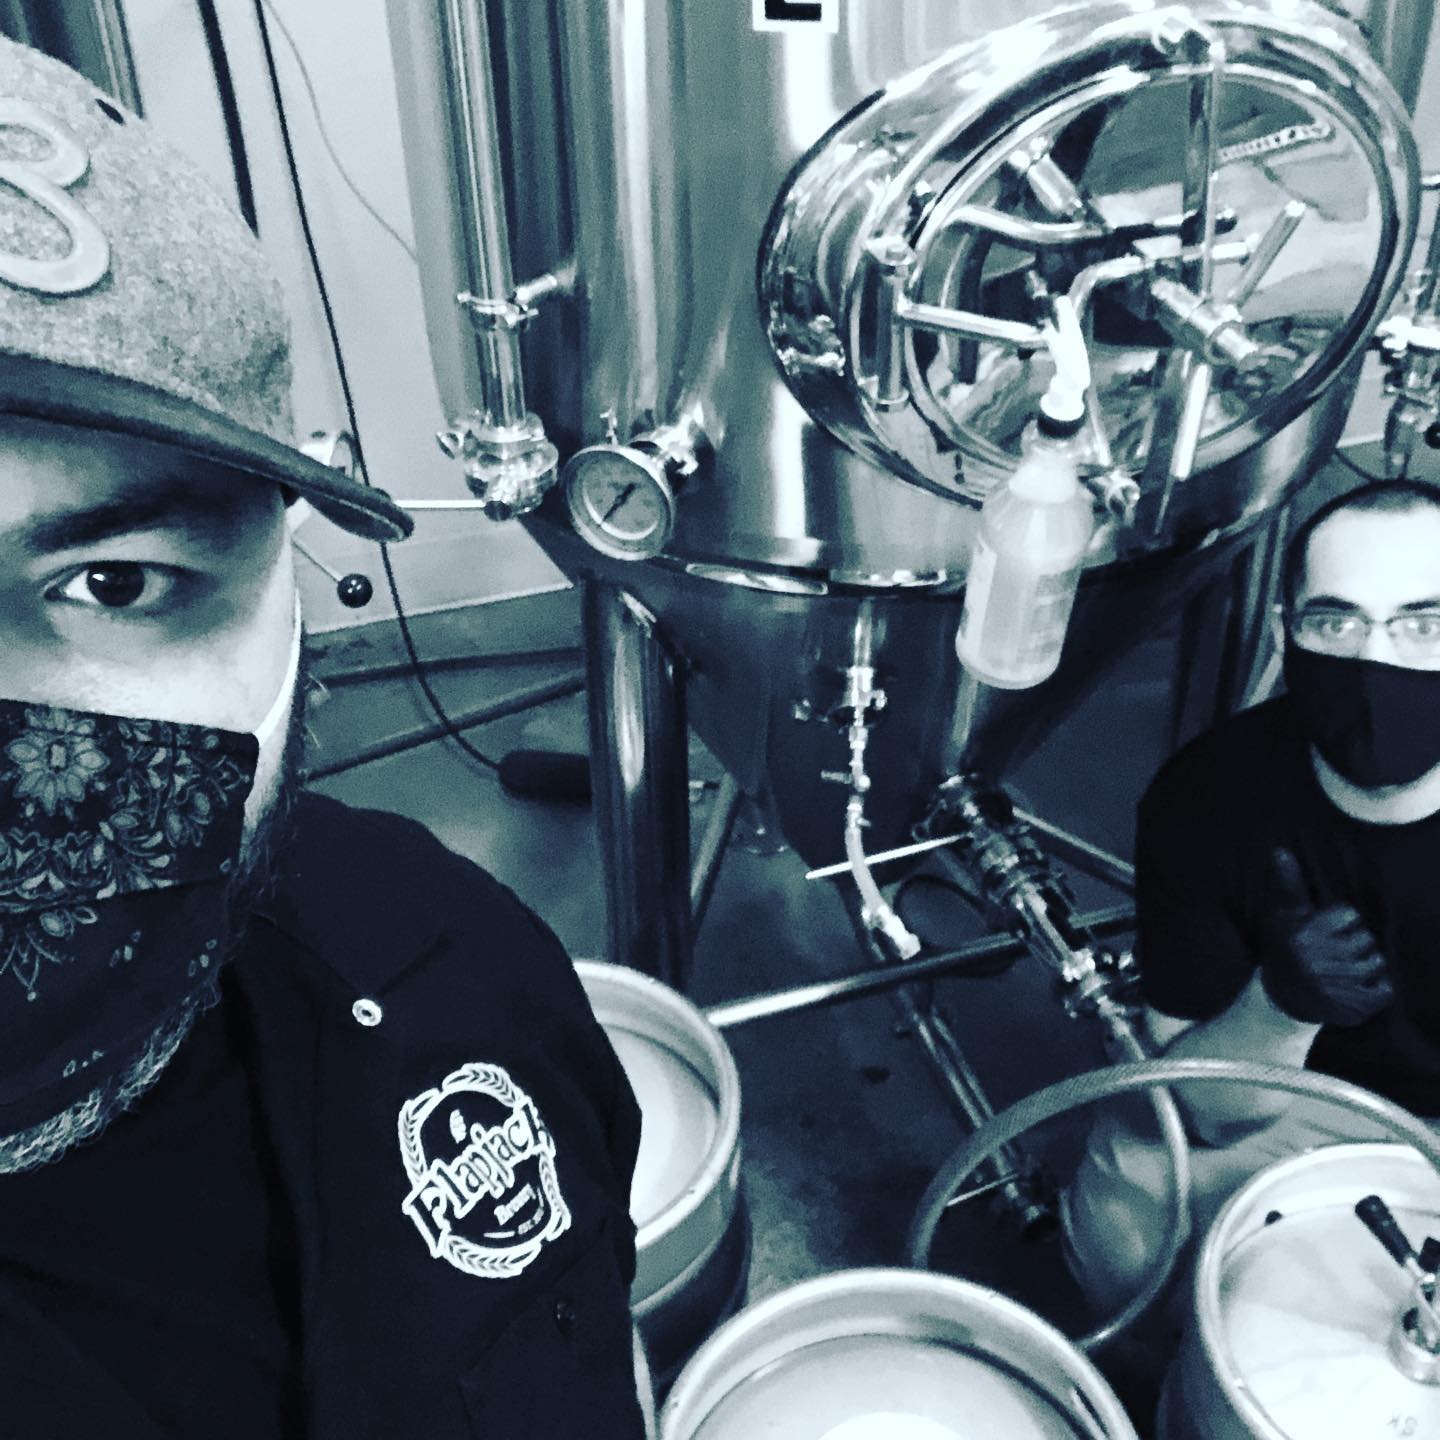 Brewers working on a beer at Flapjack Brewery